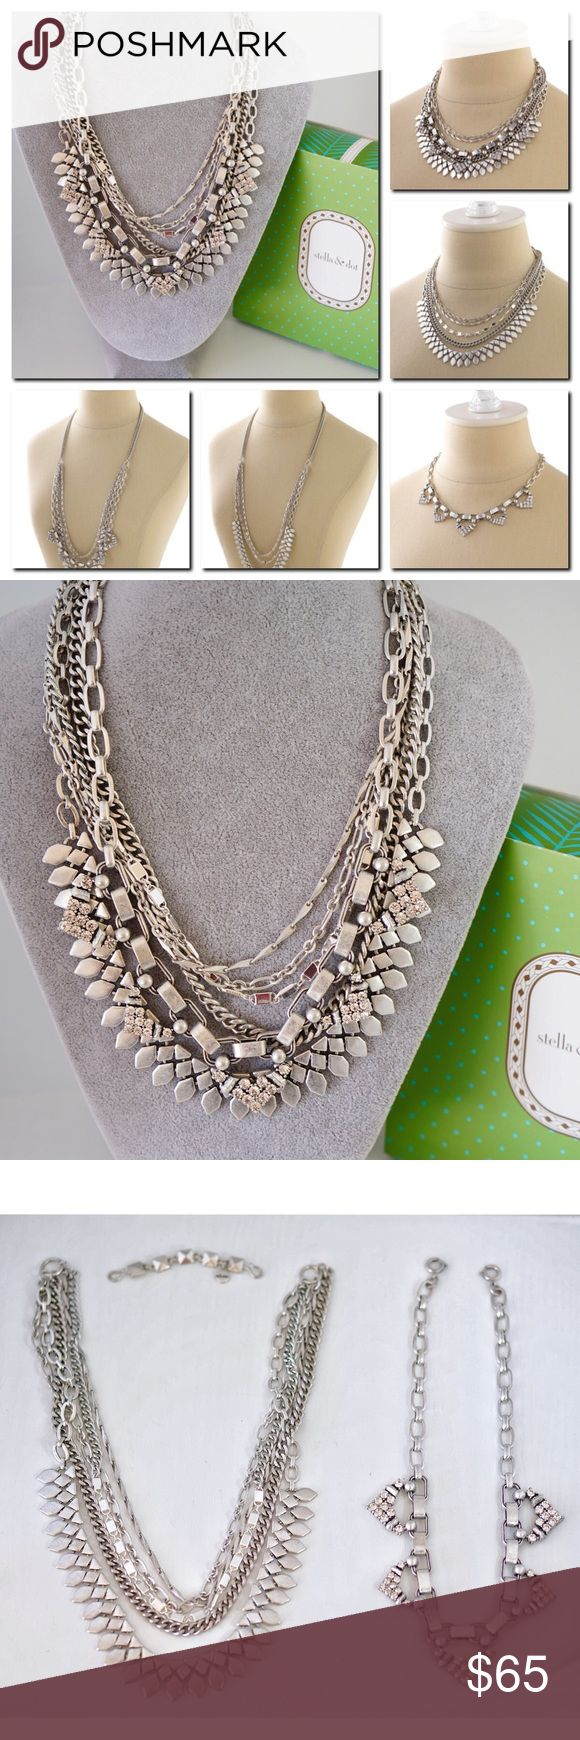 """Stella Dot SUTTON Statement Necklace Silver Layers This Sutton Necklace Silver version is an instant must-have.  Indulge in the five ways to wear our best selling statement necklace: long and loose for a laid-back look, clasped into a statement when you're feeling bold, plus or minus the sparkle strand, or just the sparkle when you're in the mood to shine. Mix of vintage and shiny silver plating. * 15"""" with 3"""" extender for shortest necklace. 31.5""""longest length. * Spring clasp closure with…"""